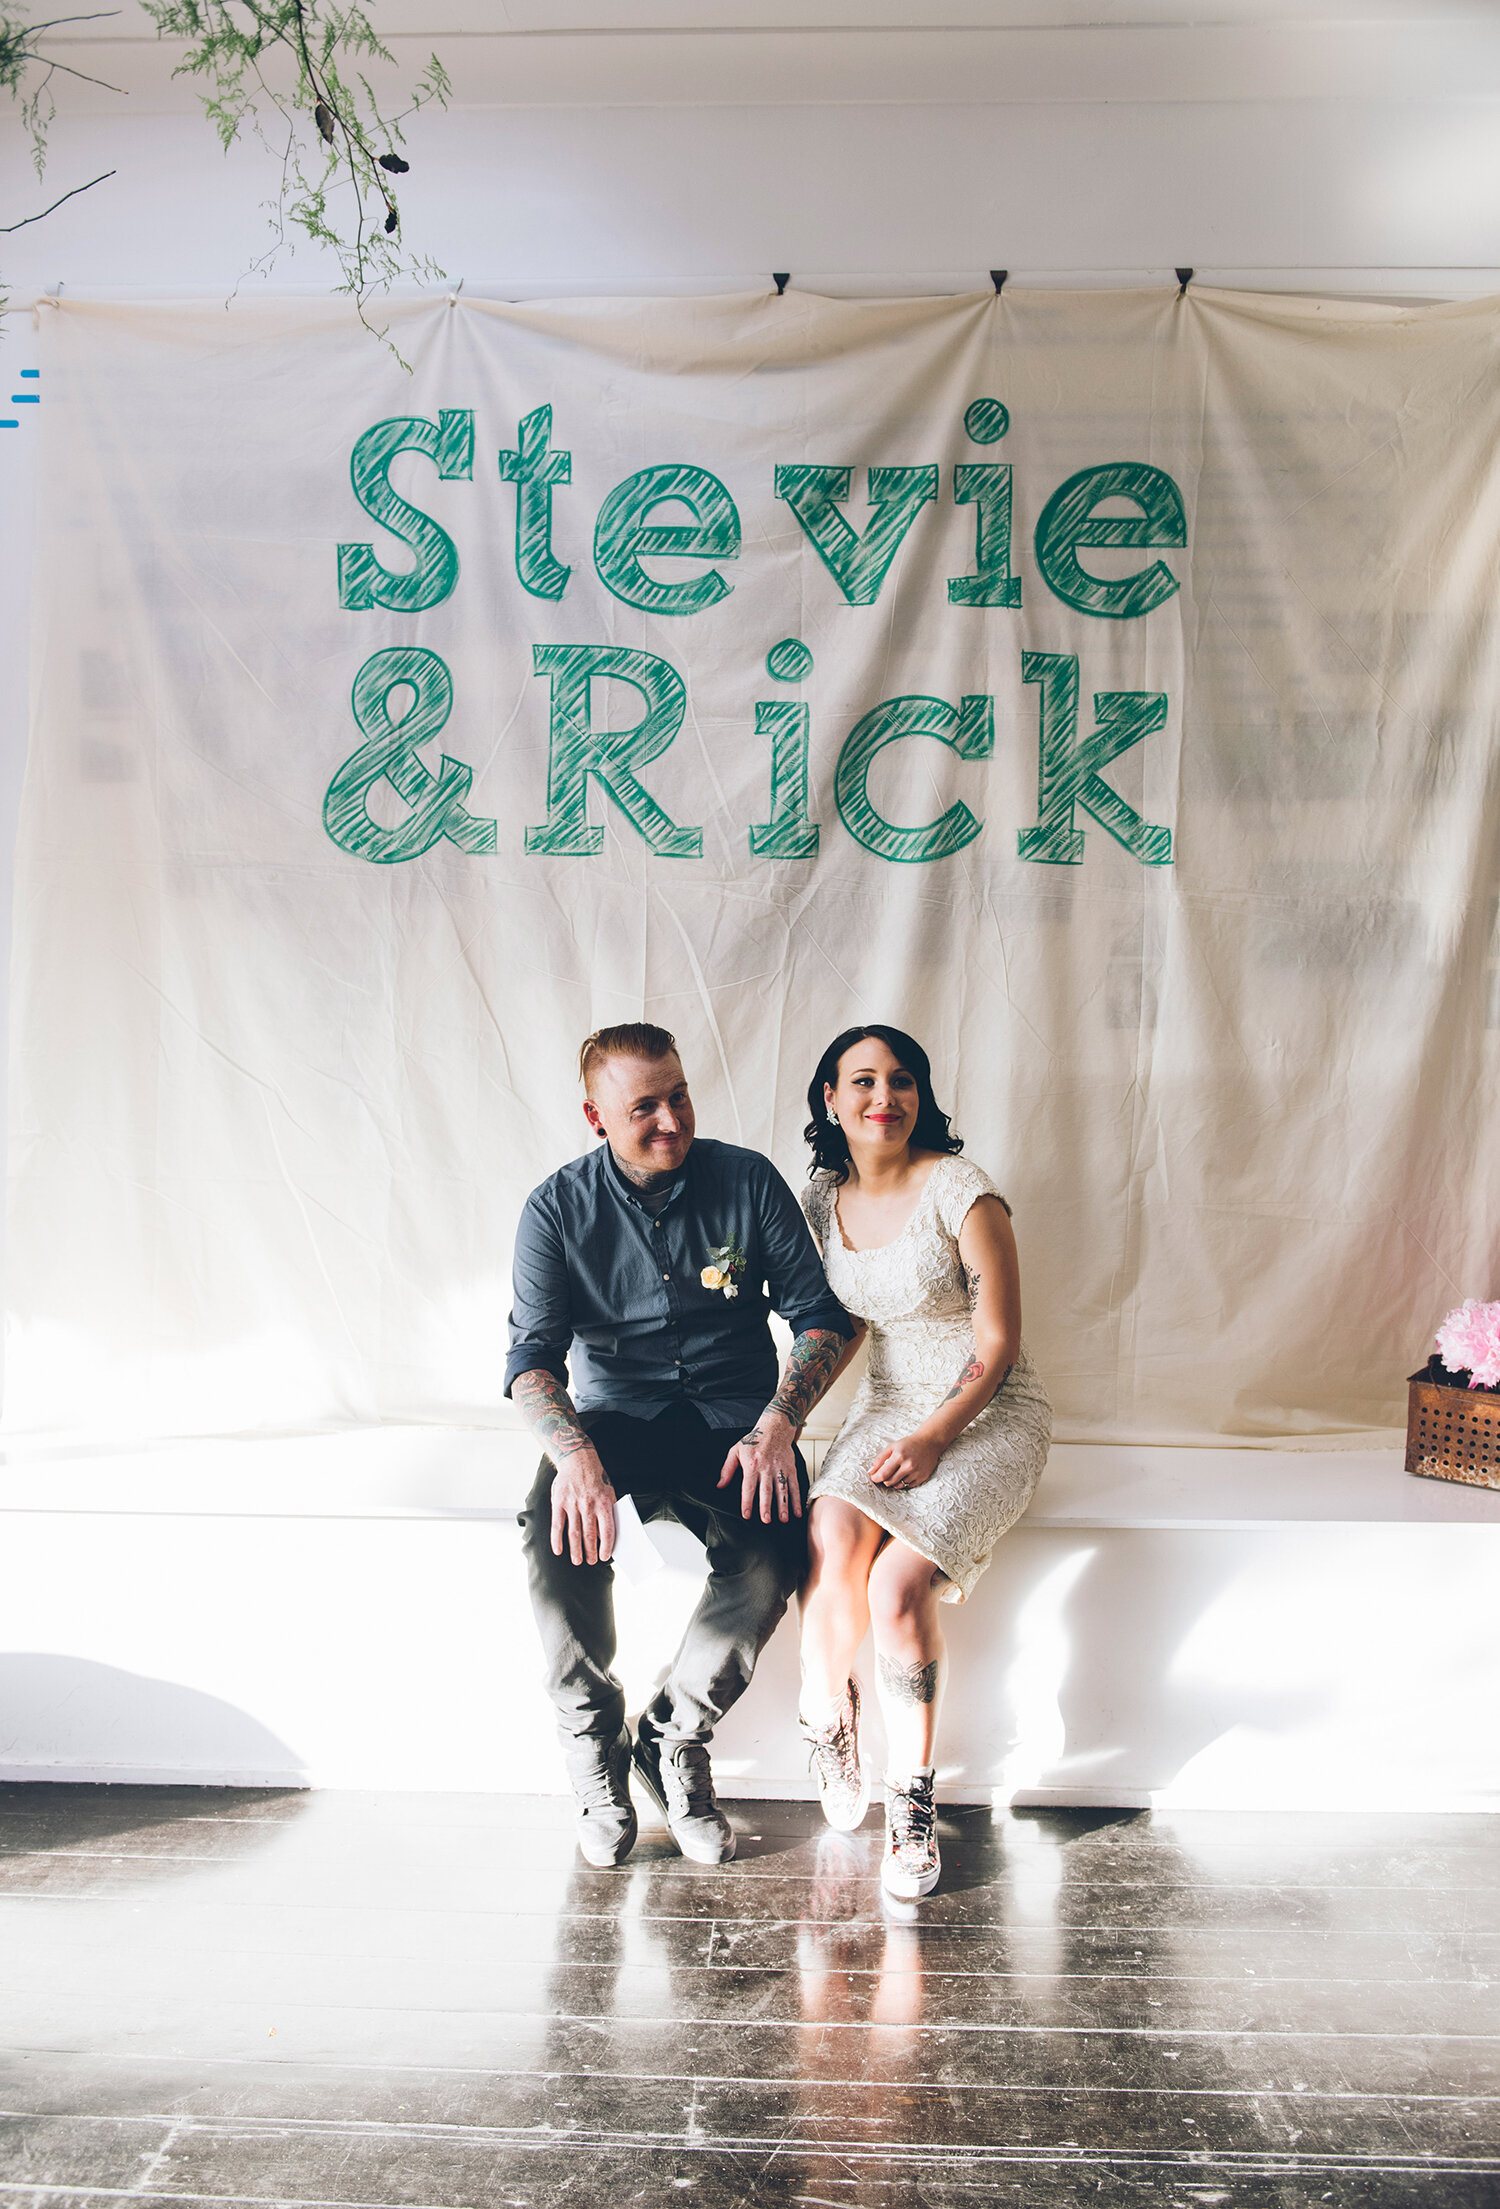 - Stevie + RickI am so happy that we decided to go with Eliza to photograph our wedding day. Her style was exactly what we were looking for and we couldn't be happier with the images that we got back. She was very professional, while still being easy going and made us feel completely relaxed in front of the camera. Would happily recommend this photographer to any of my family and friends.